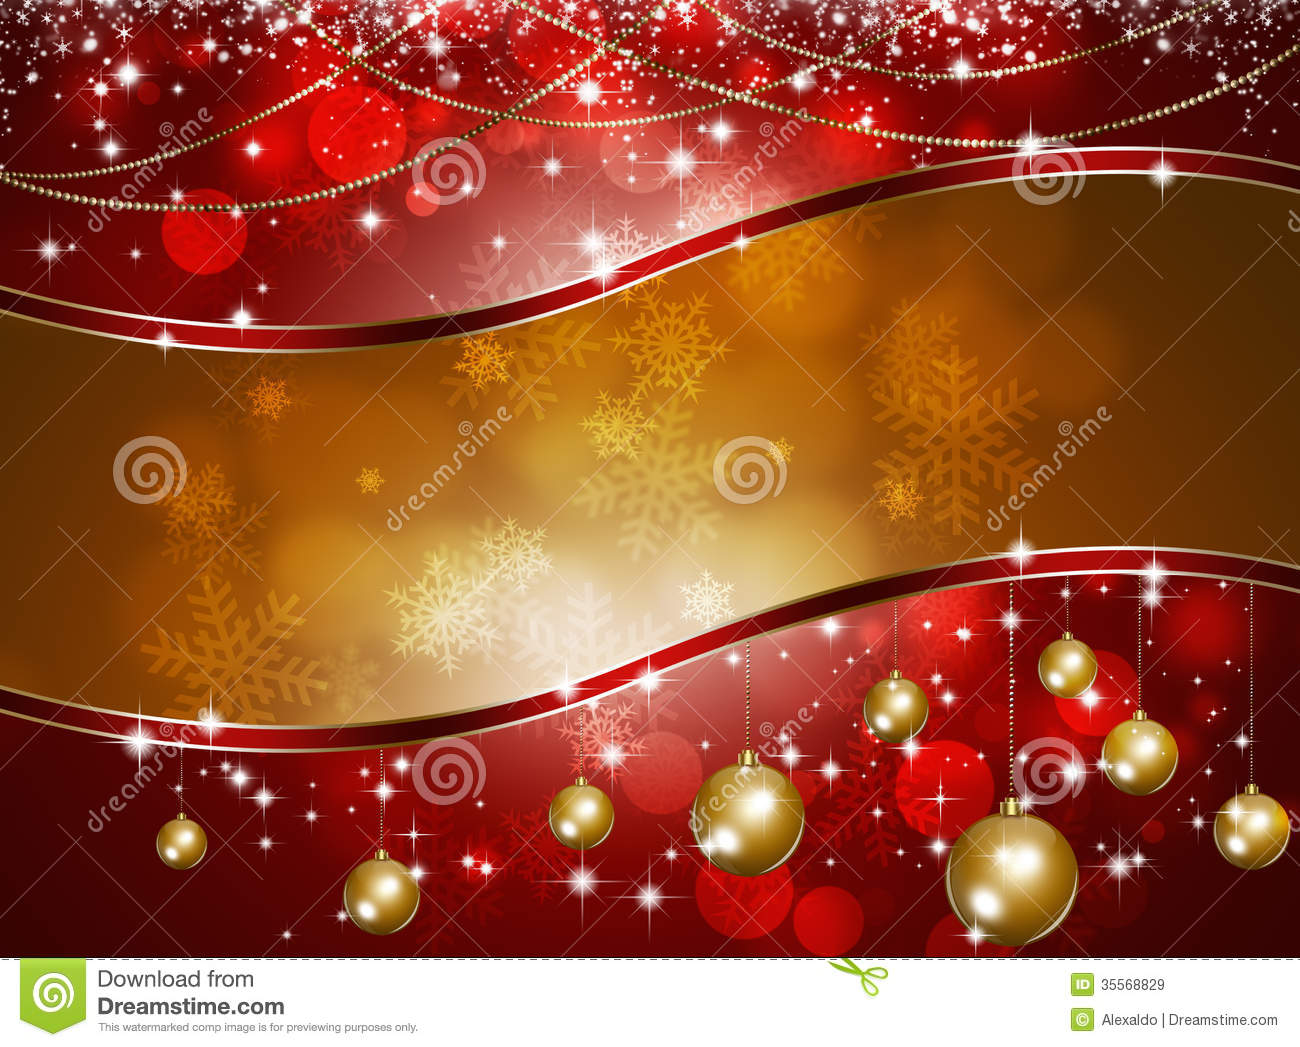 Free Illustration Background Christmas Red Gold: Xmas Celebration Background Stock Illustration